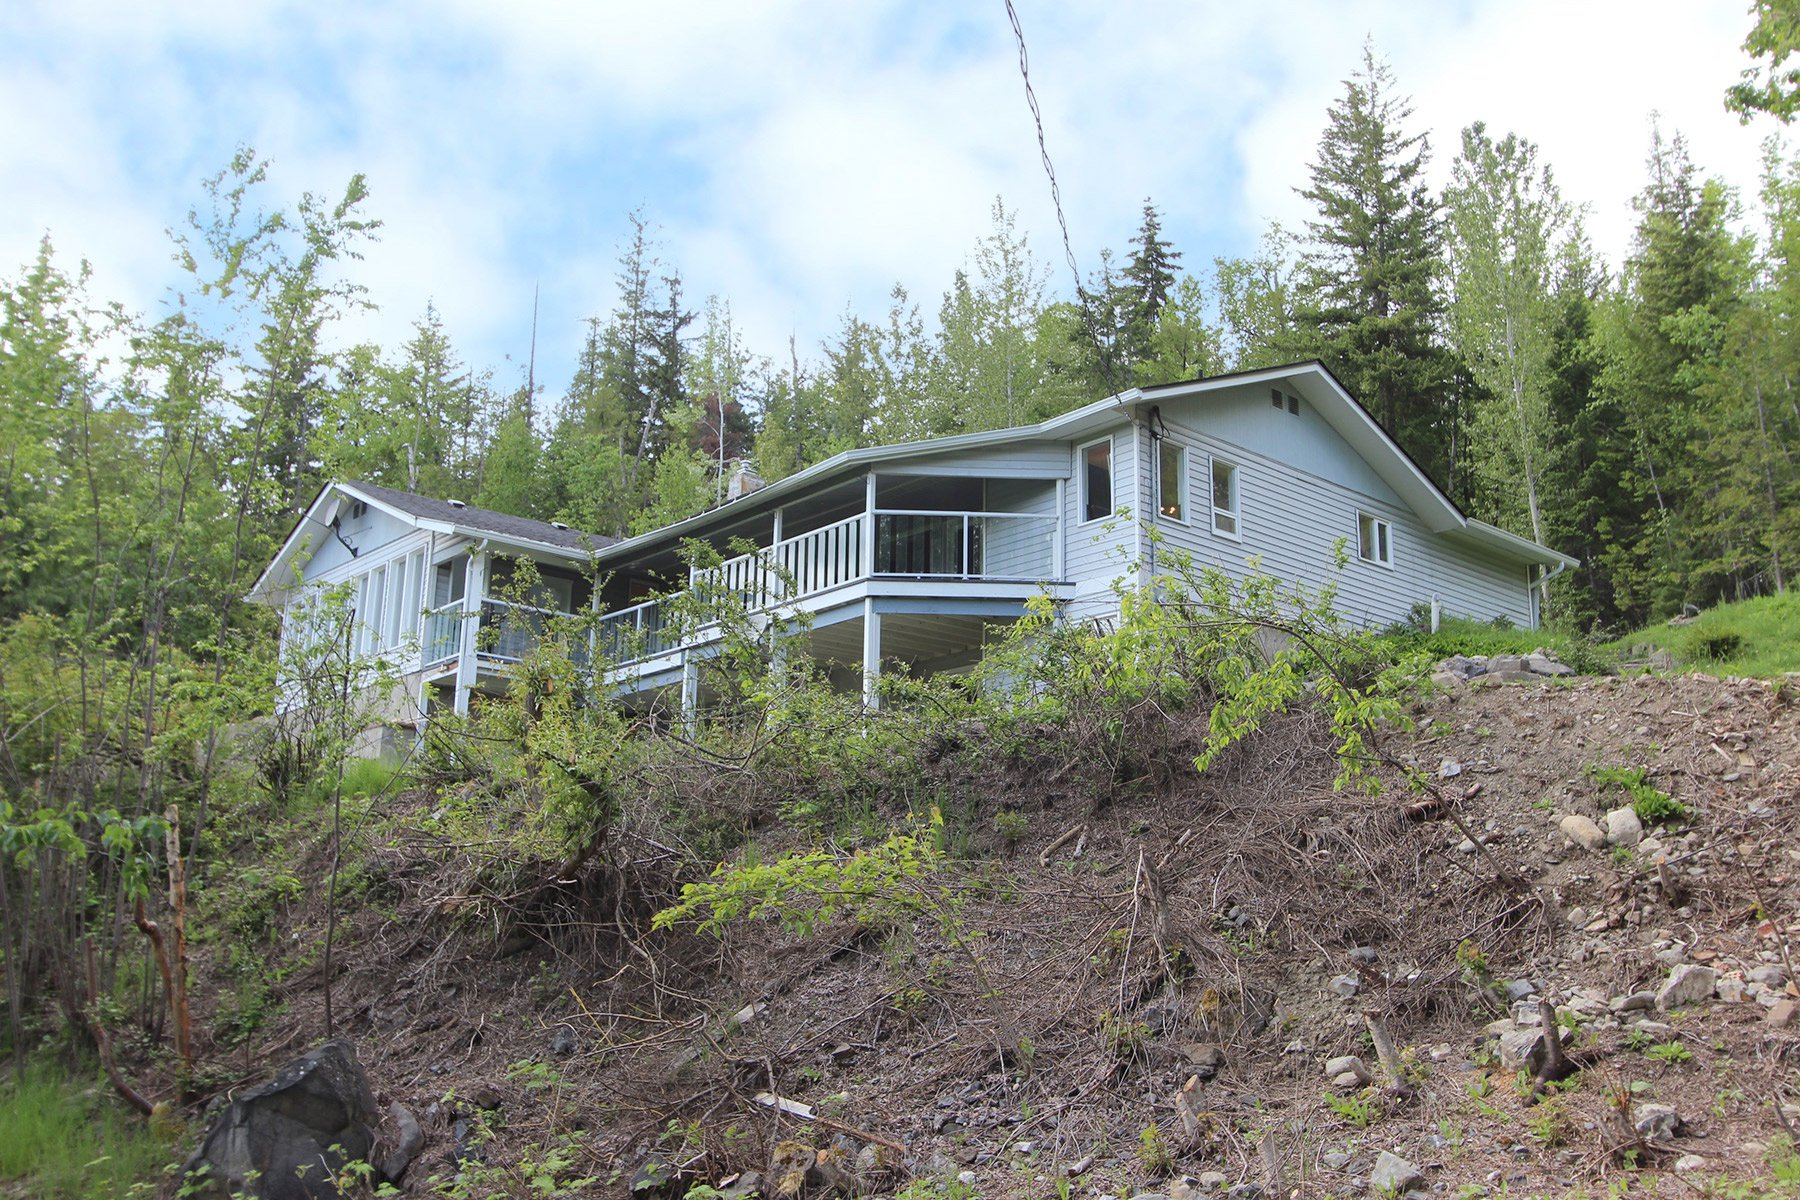 Photo 12: Photos: 6831 Magna Bay Drive in Magna Bay: House with Acreage for sale : MLS®# 10205520